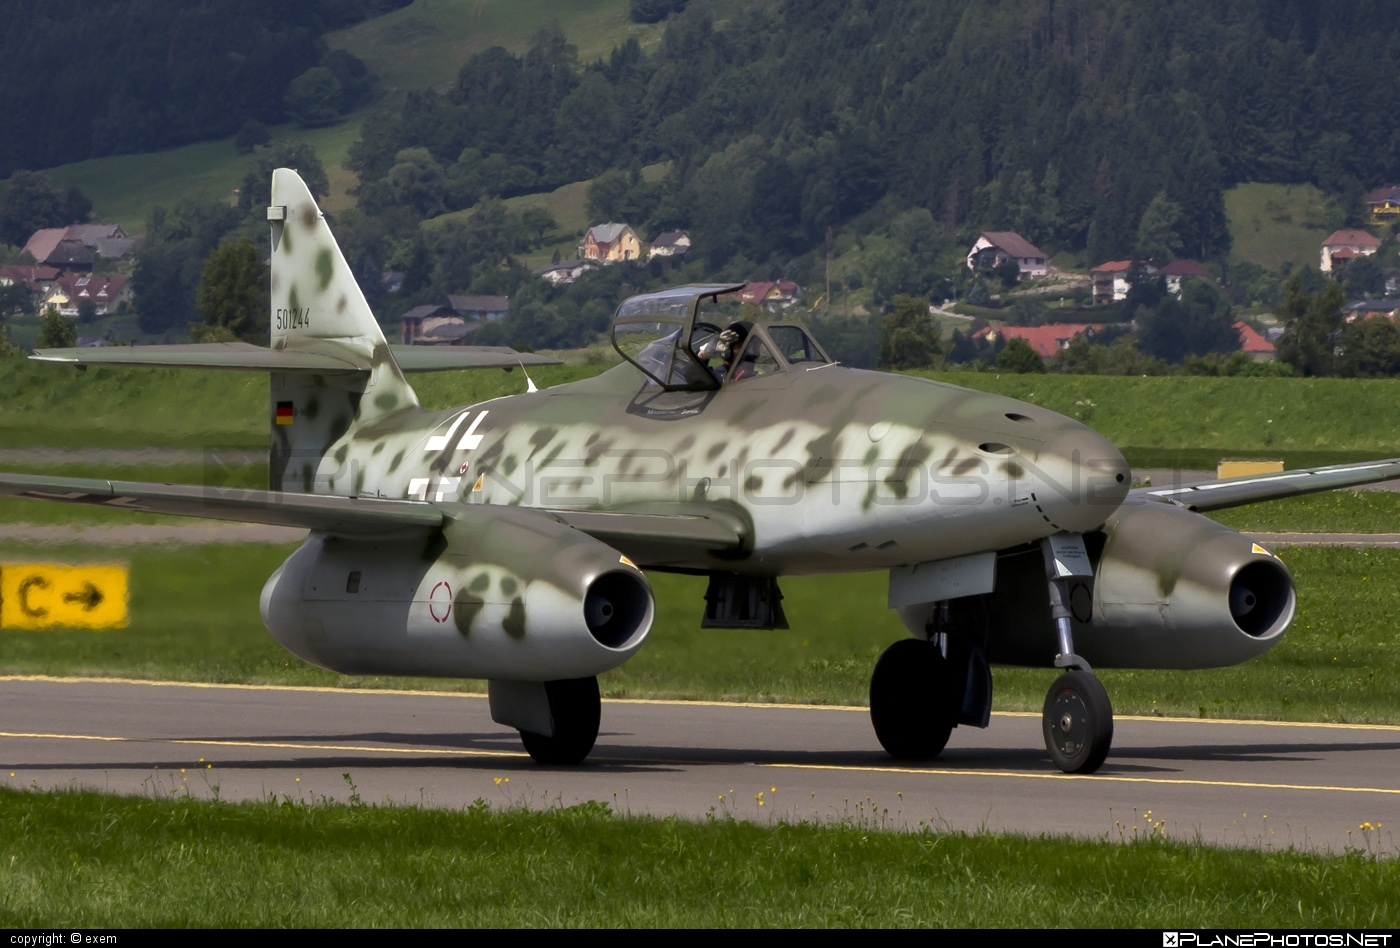 Messerschmitt Me 262A-1c Schwalbe (replica) - D-IMTT operated by Messerschmitt Foundation #me262 #me262replica #me262schwalbe #messerschmitt